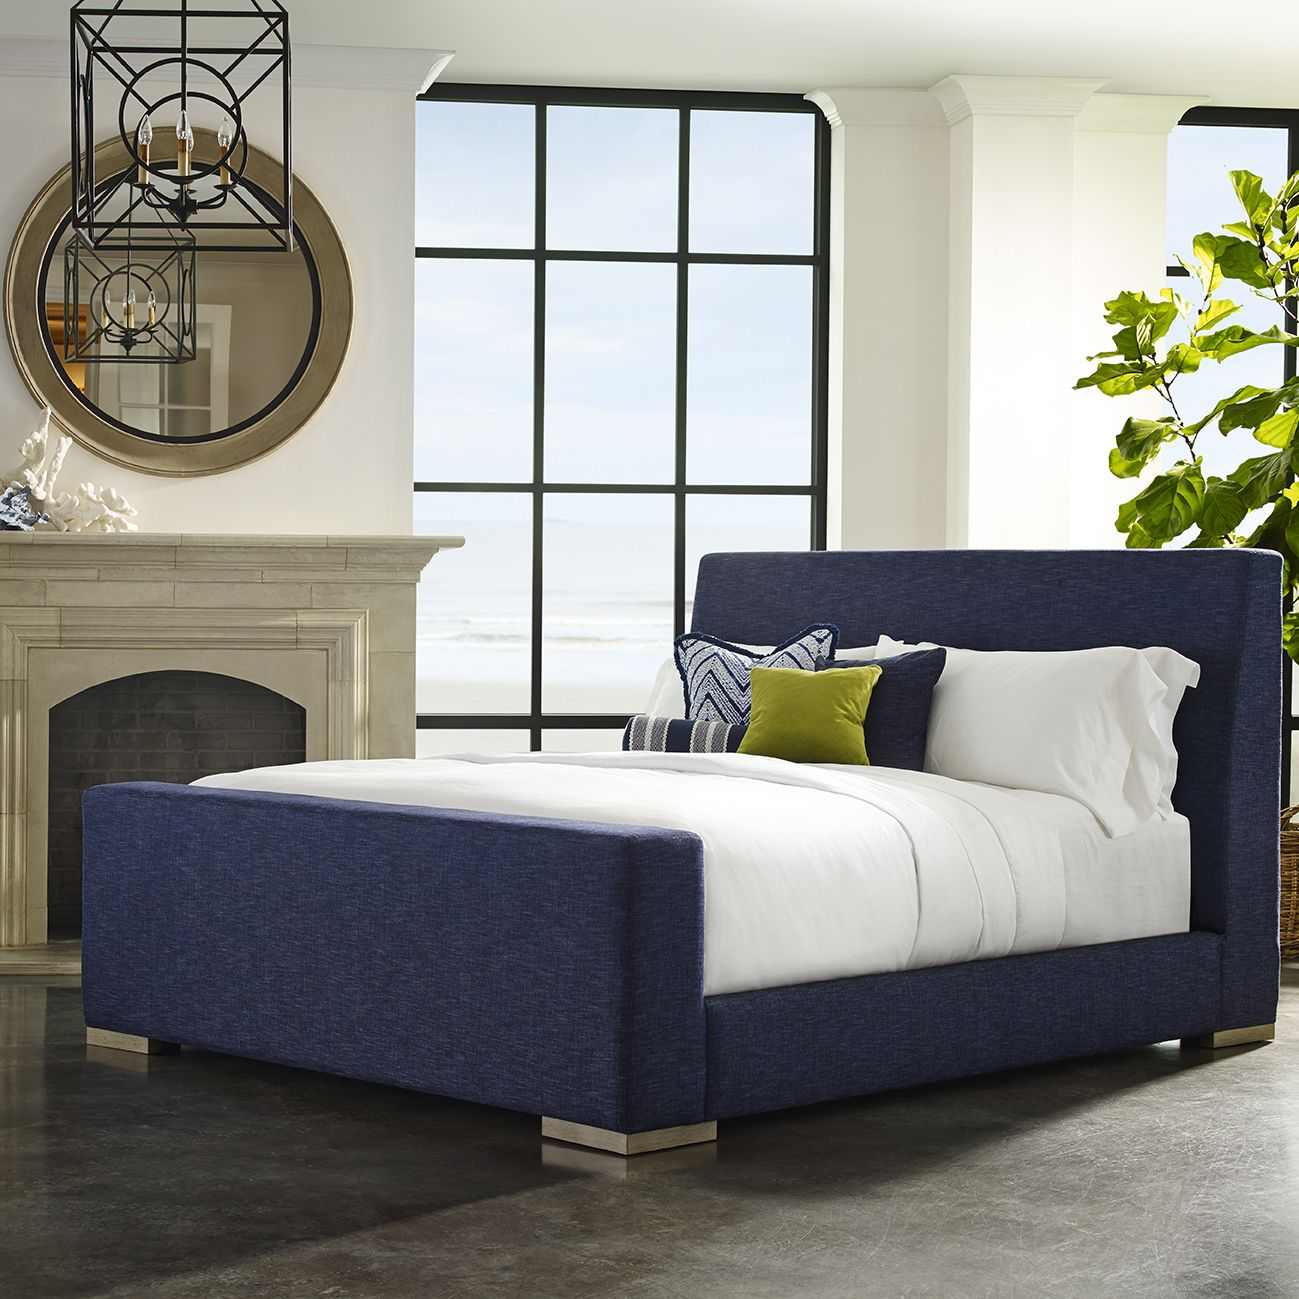 Pin by Design Louis on Beds (With images